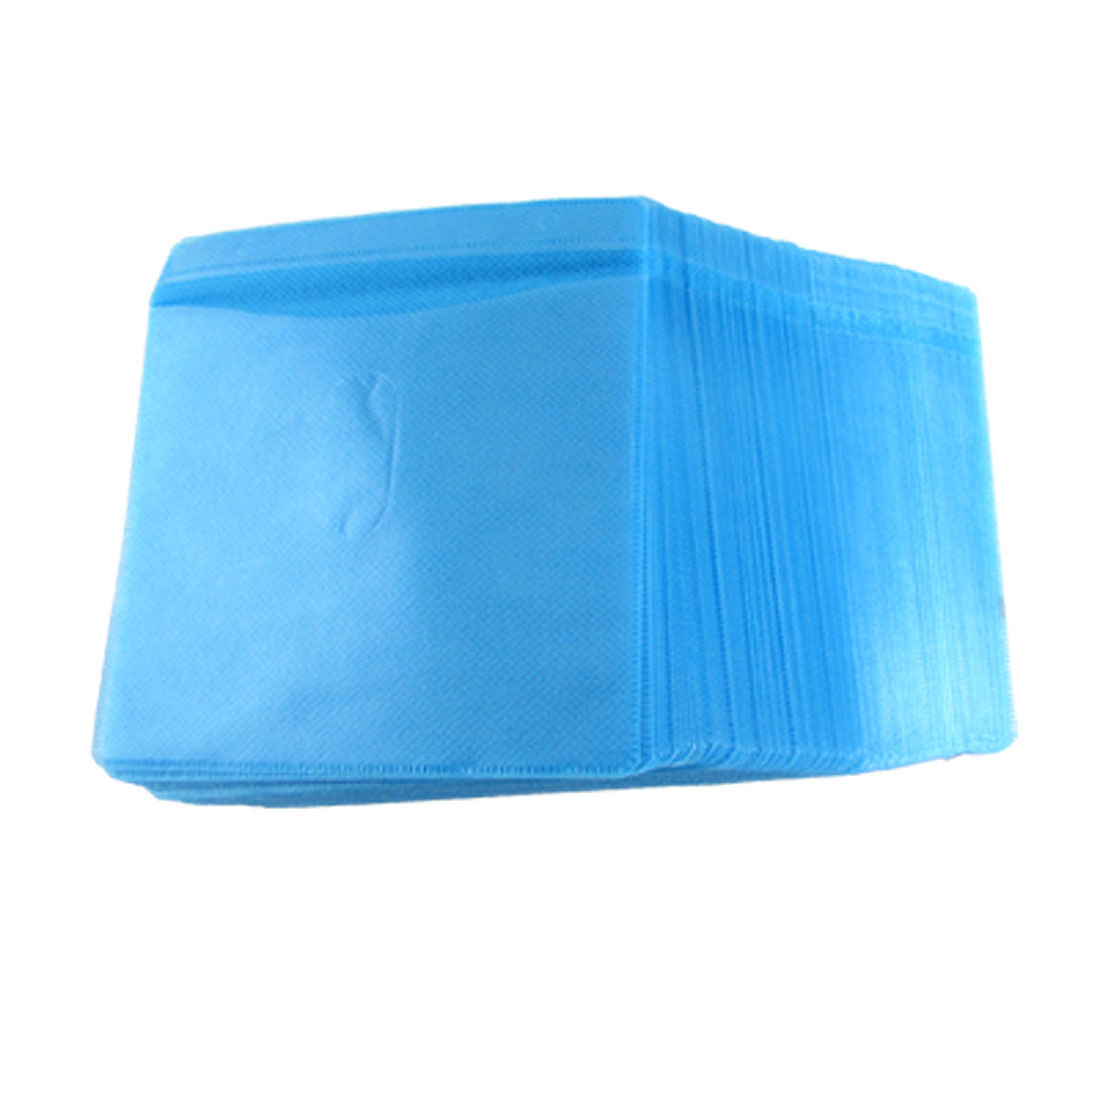 Blue Plastic 100 Pieces Home CD Compact Disc Storage Bag